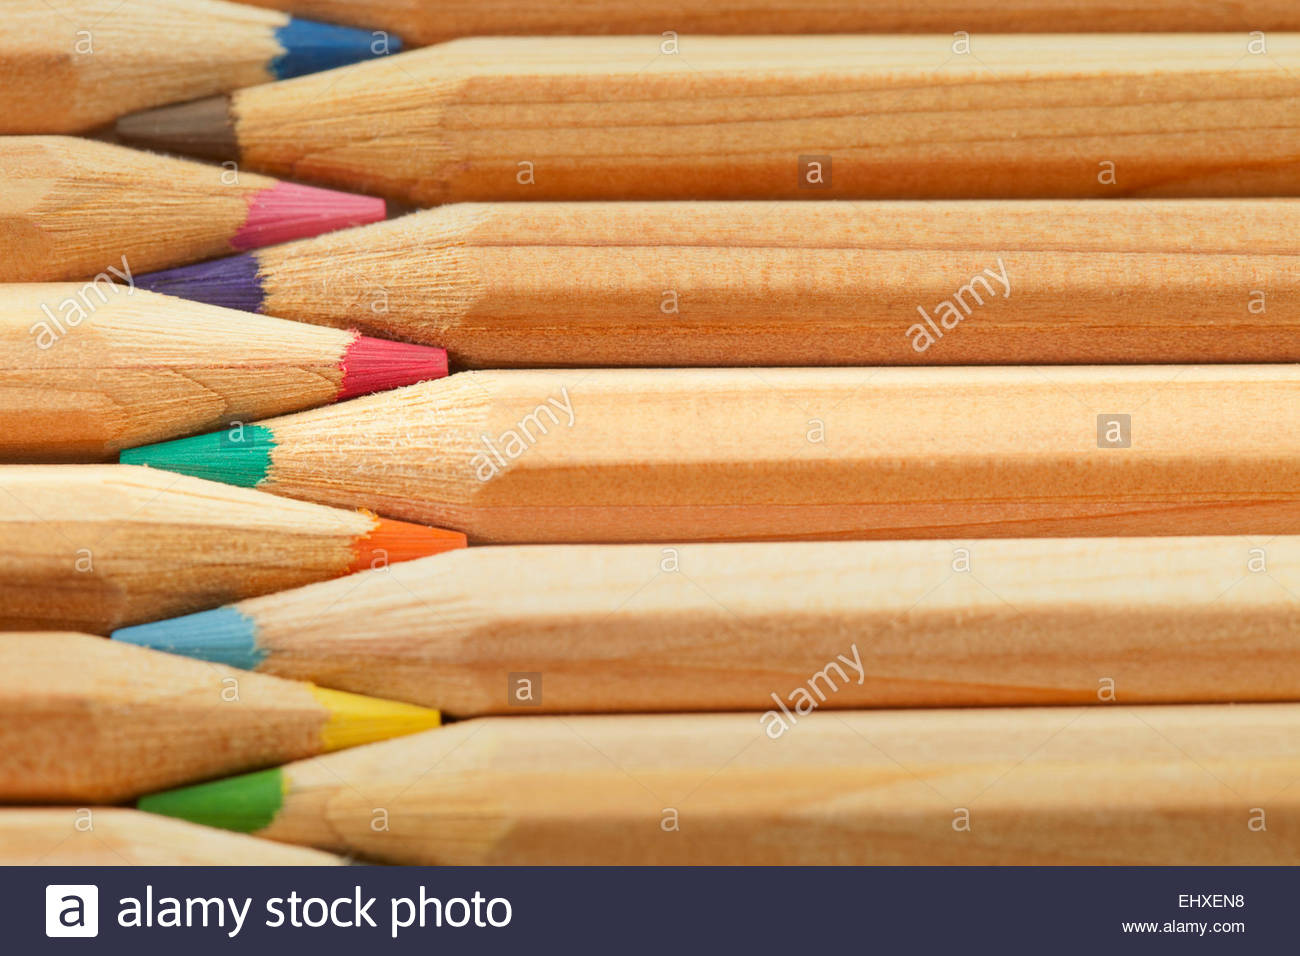 Colour pencils still life macro close up detail - Stock Image